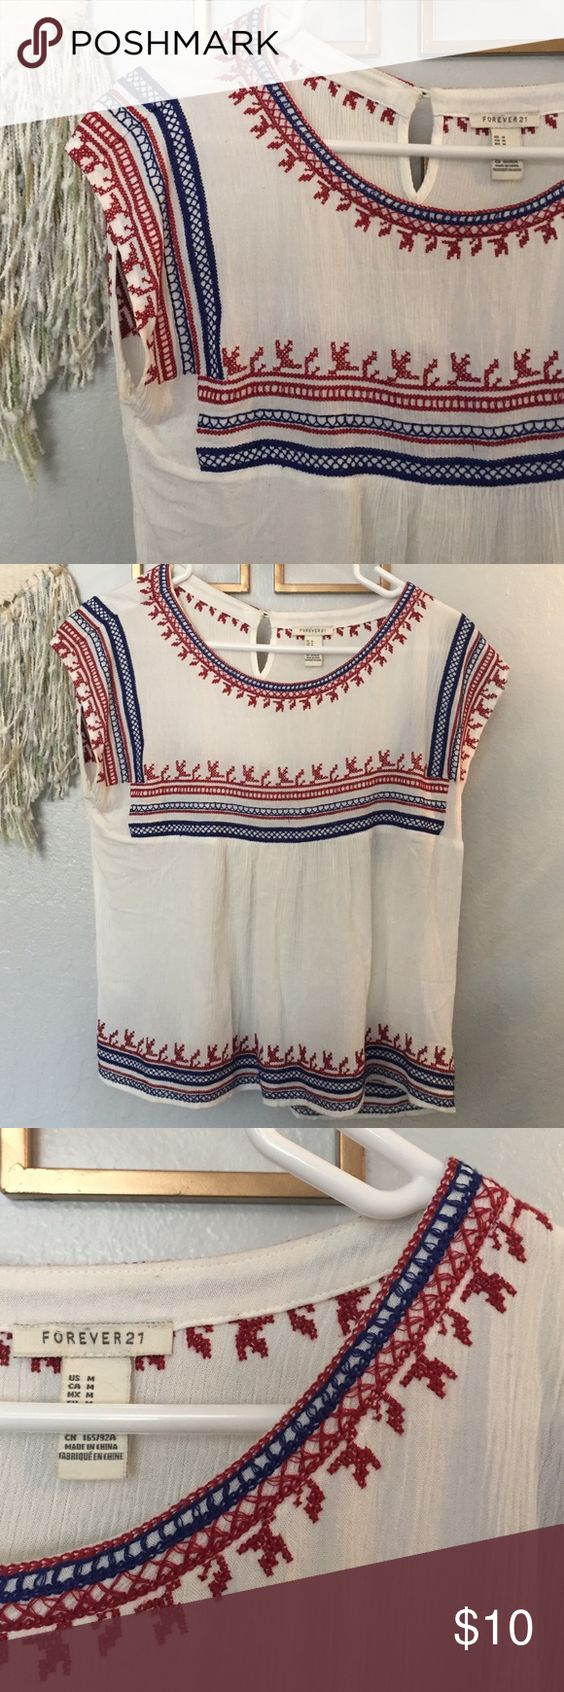 Boho top Cute little boho top! Runs tts. 100% rayon. No stains or rips. Cute little top! Forever 21 Tops Blouses